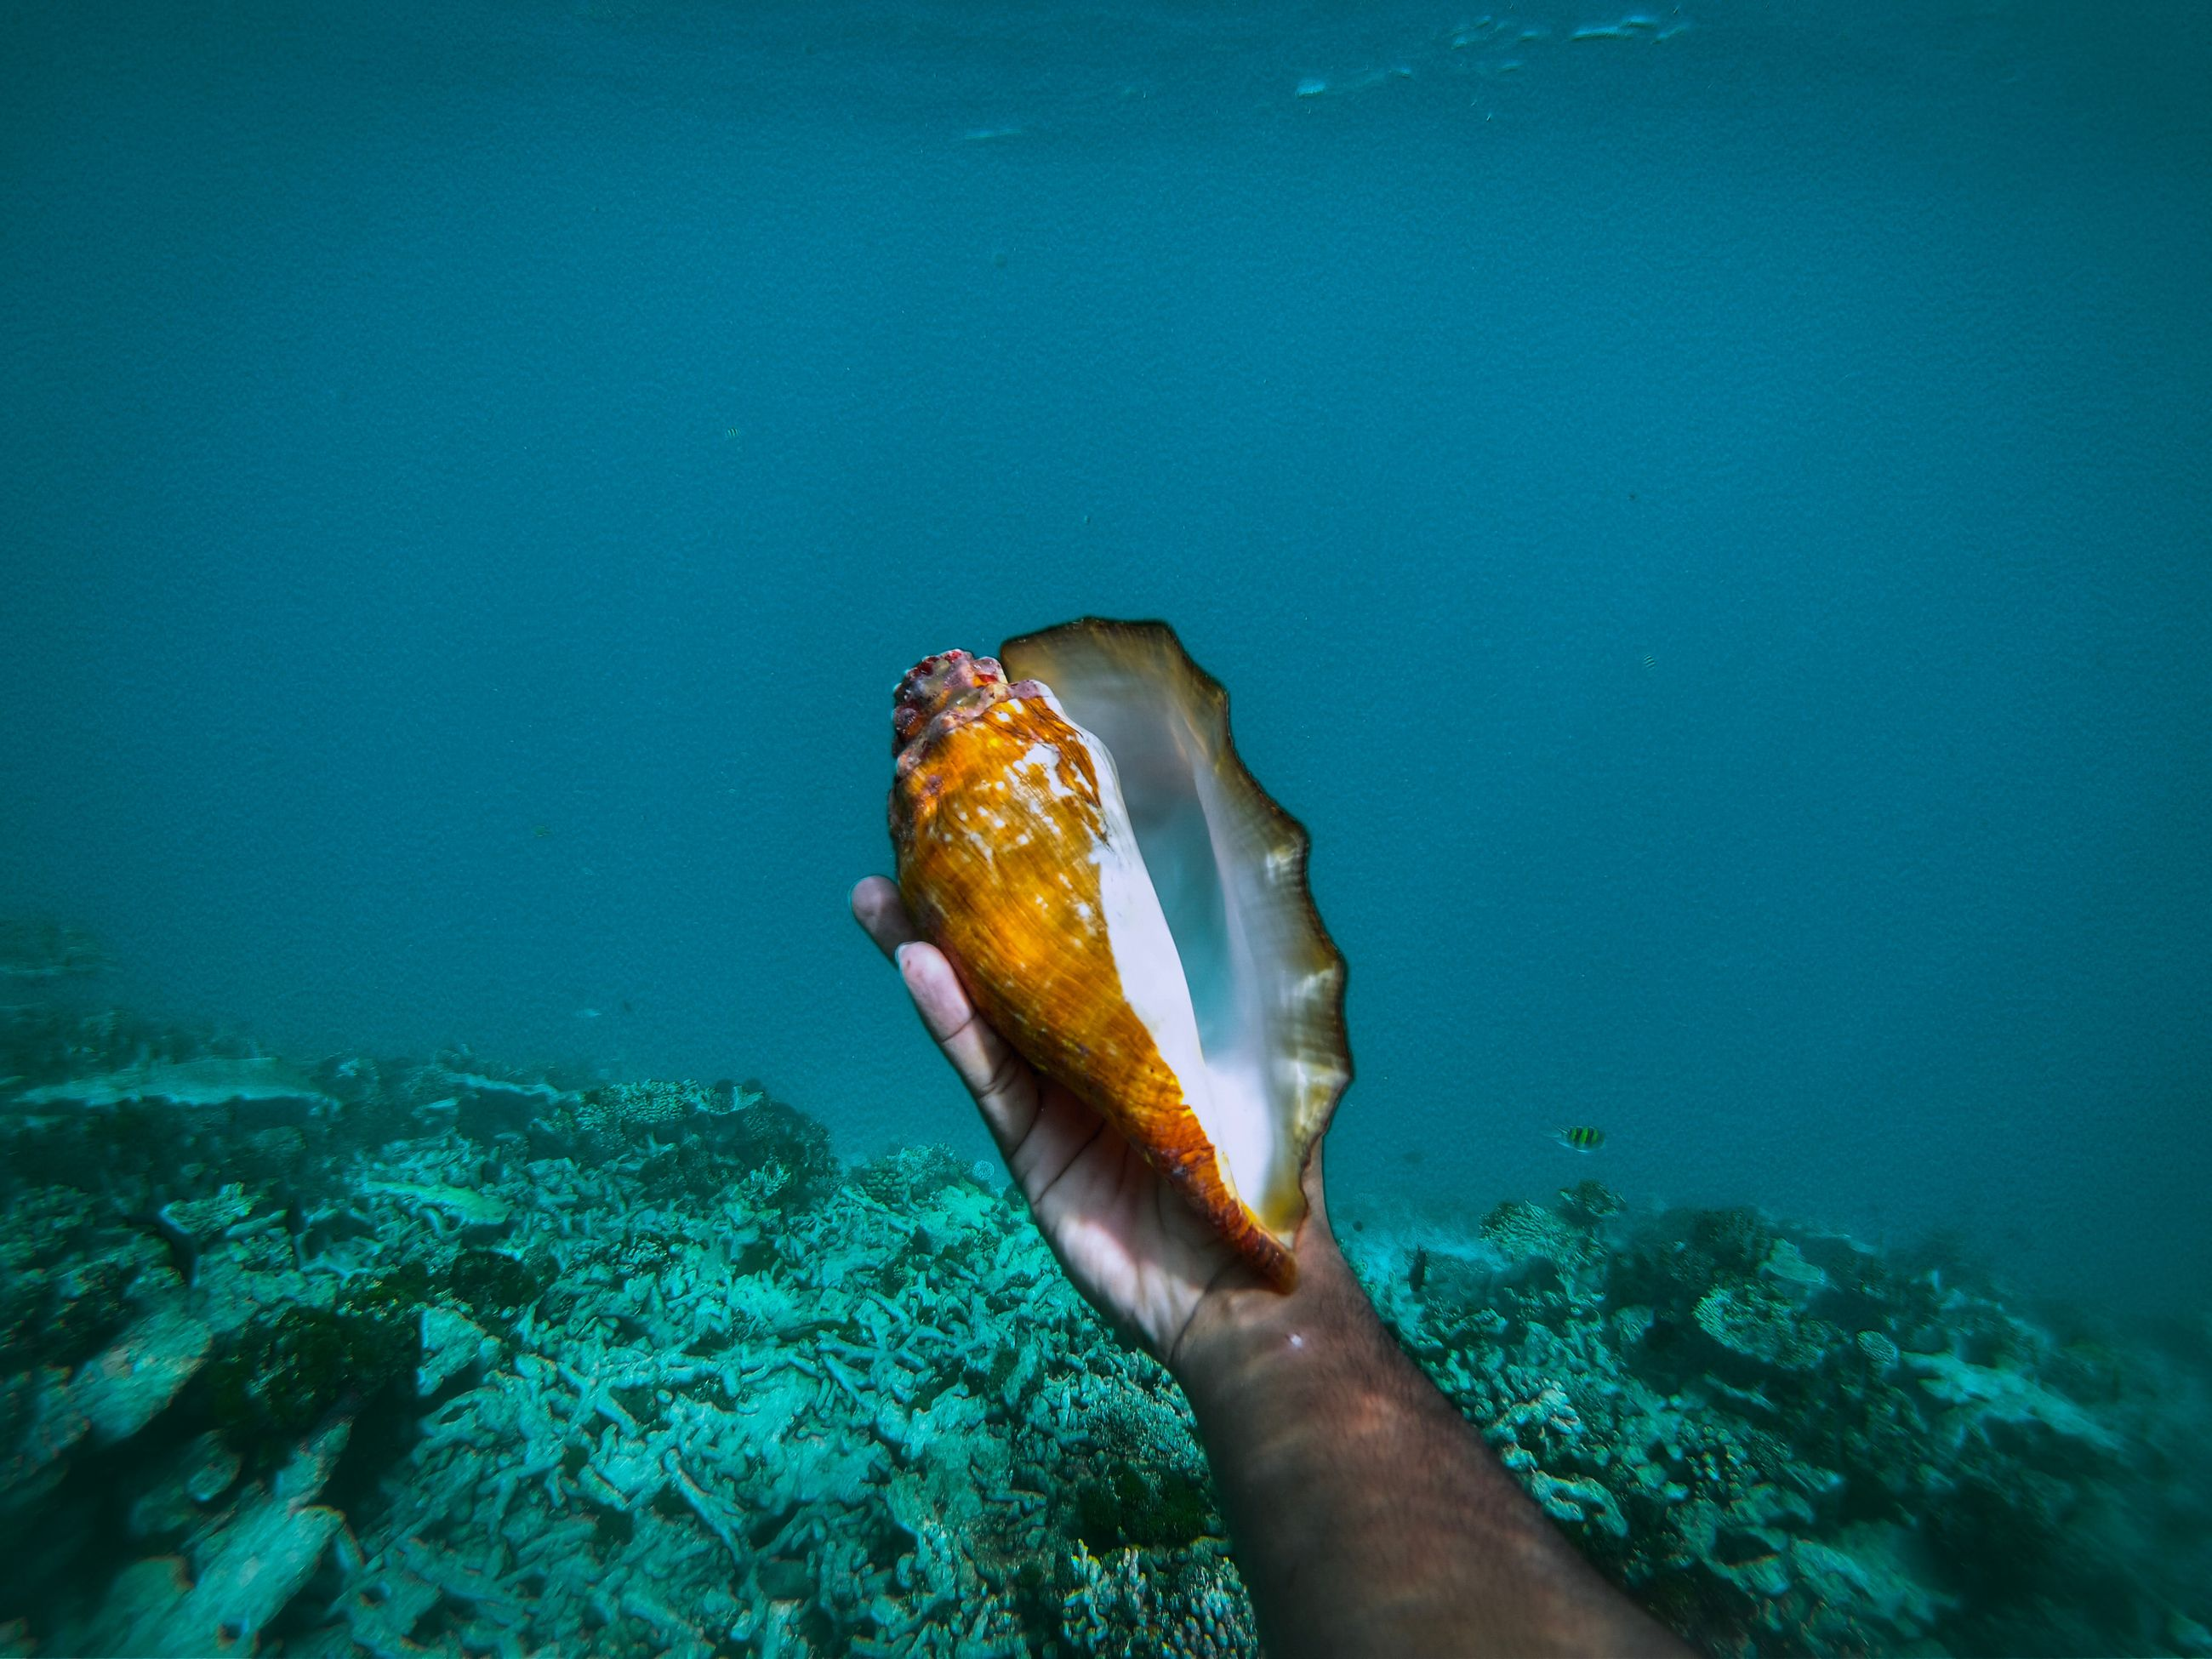 sea, water, underwater, one animal, animals in the wild, animal themes, animal, animal wildlife, one person, undersea, sea life, nature, human hand, marine, human body part, blue, swimming, hand, day, outdoors, finger, turquoise colored